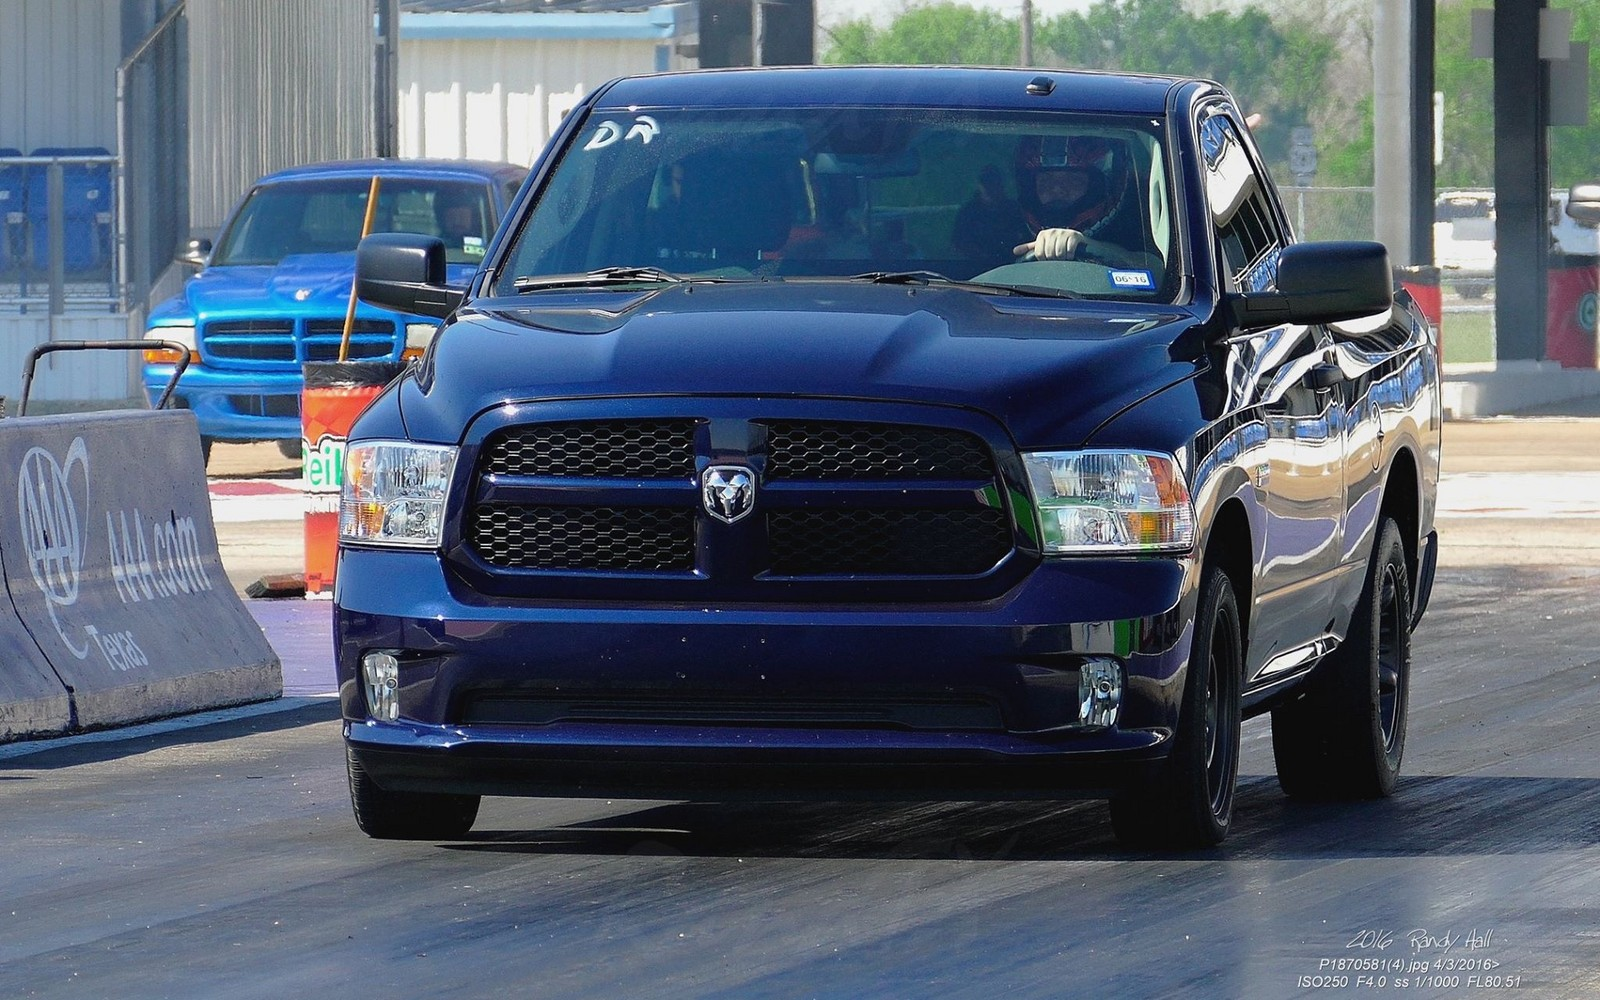 True Blue Pearl 2014 Dodge Ram 1500 RCSB